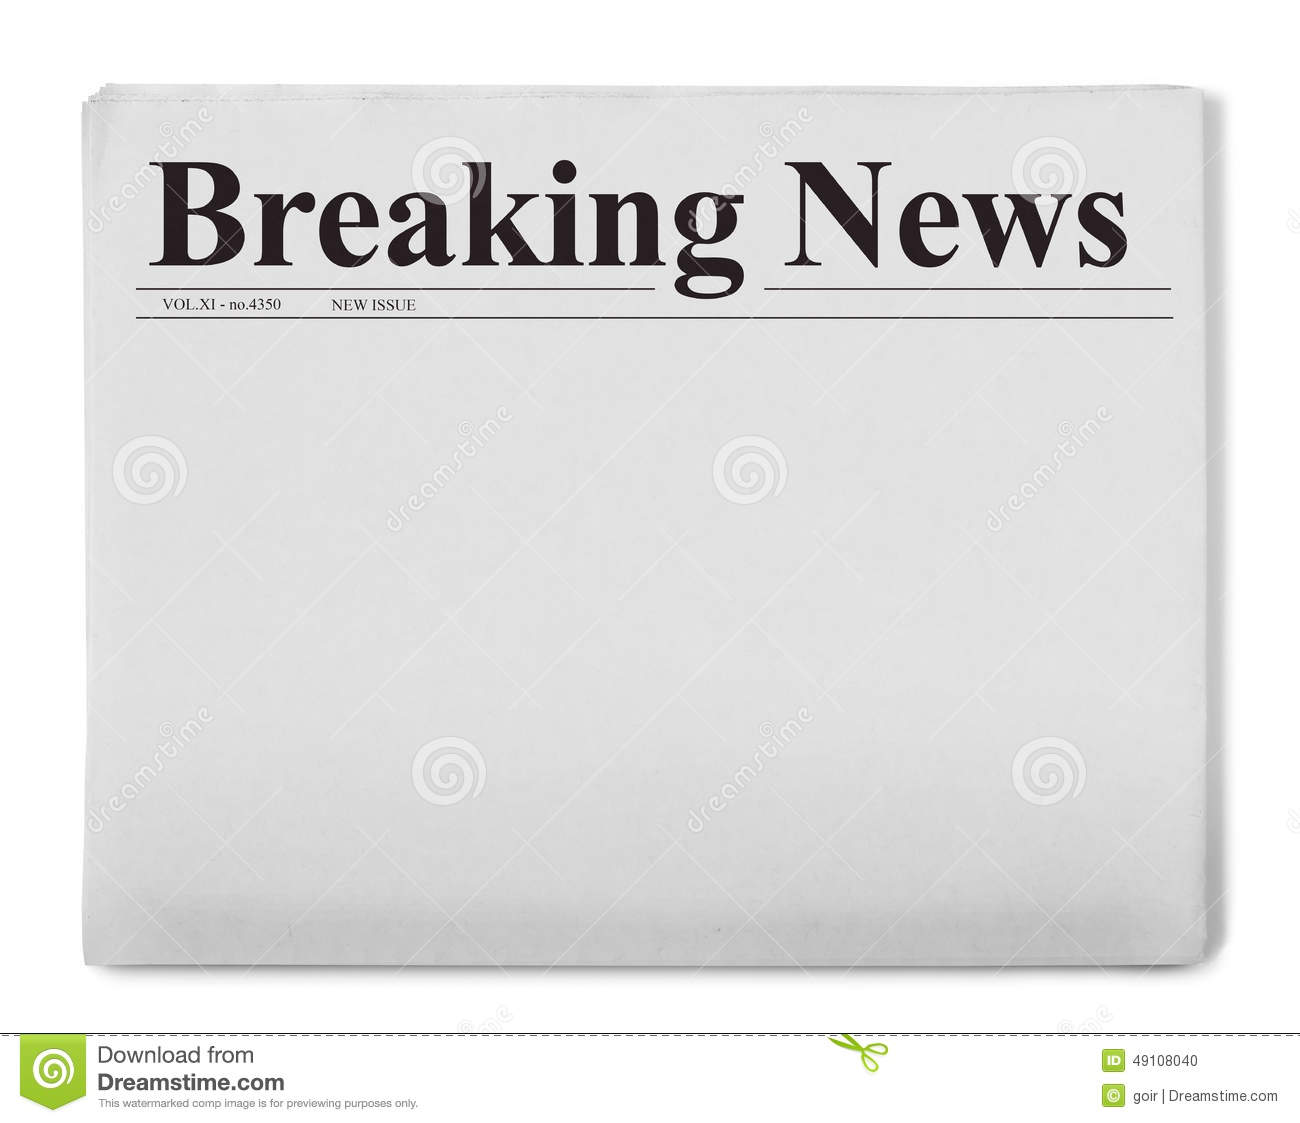 Breaking News Title On Newspaper Stock Photo